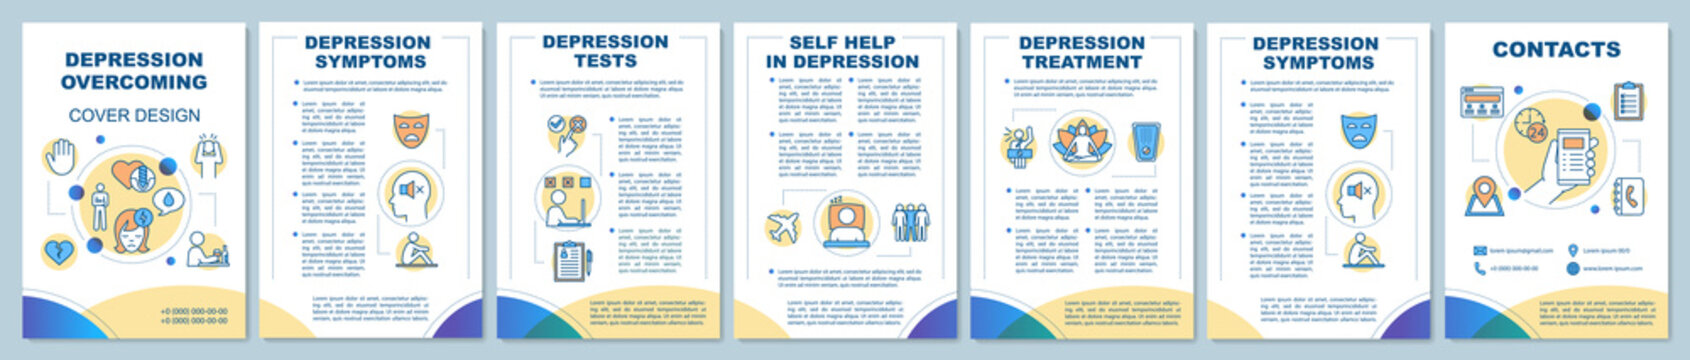 Depression treatment brochure template layout